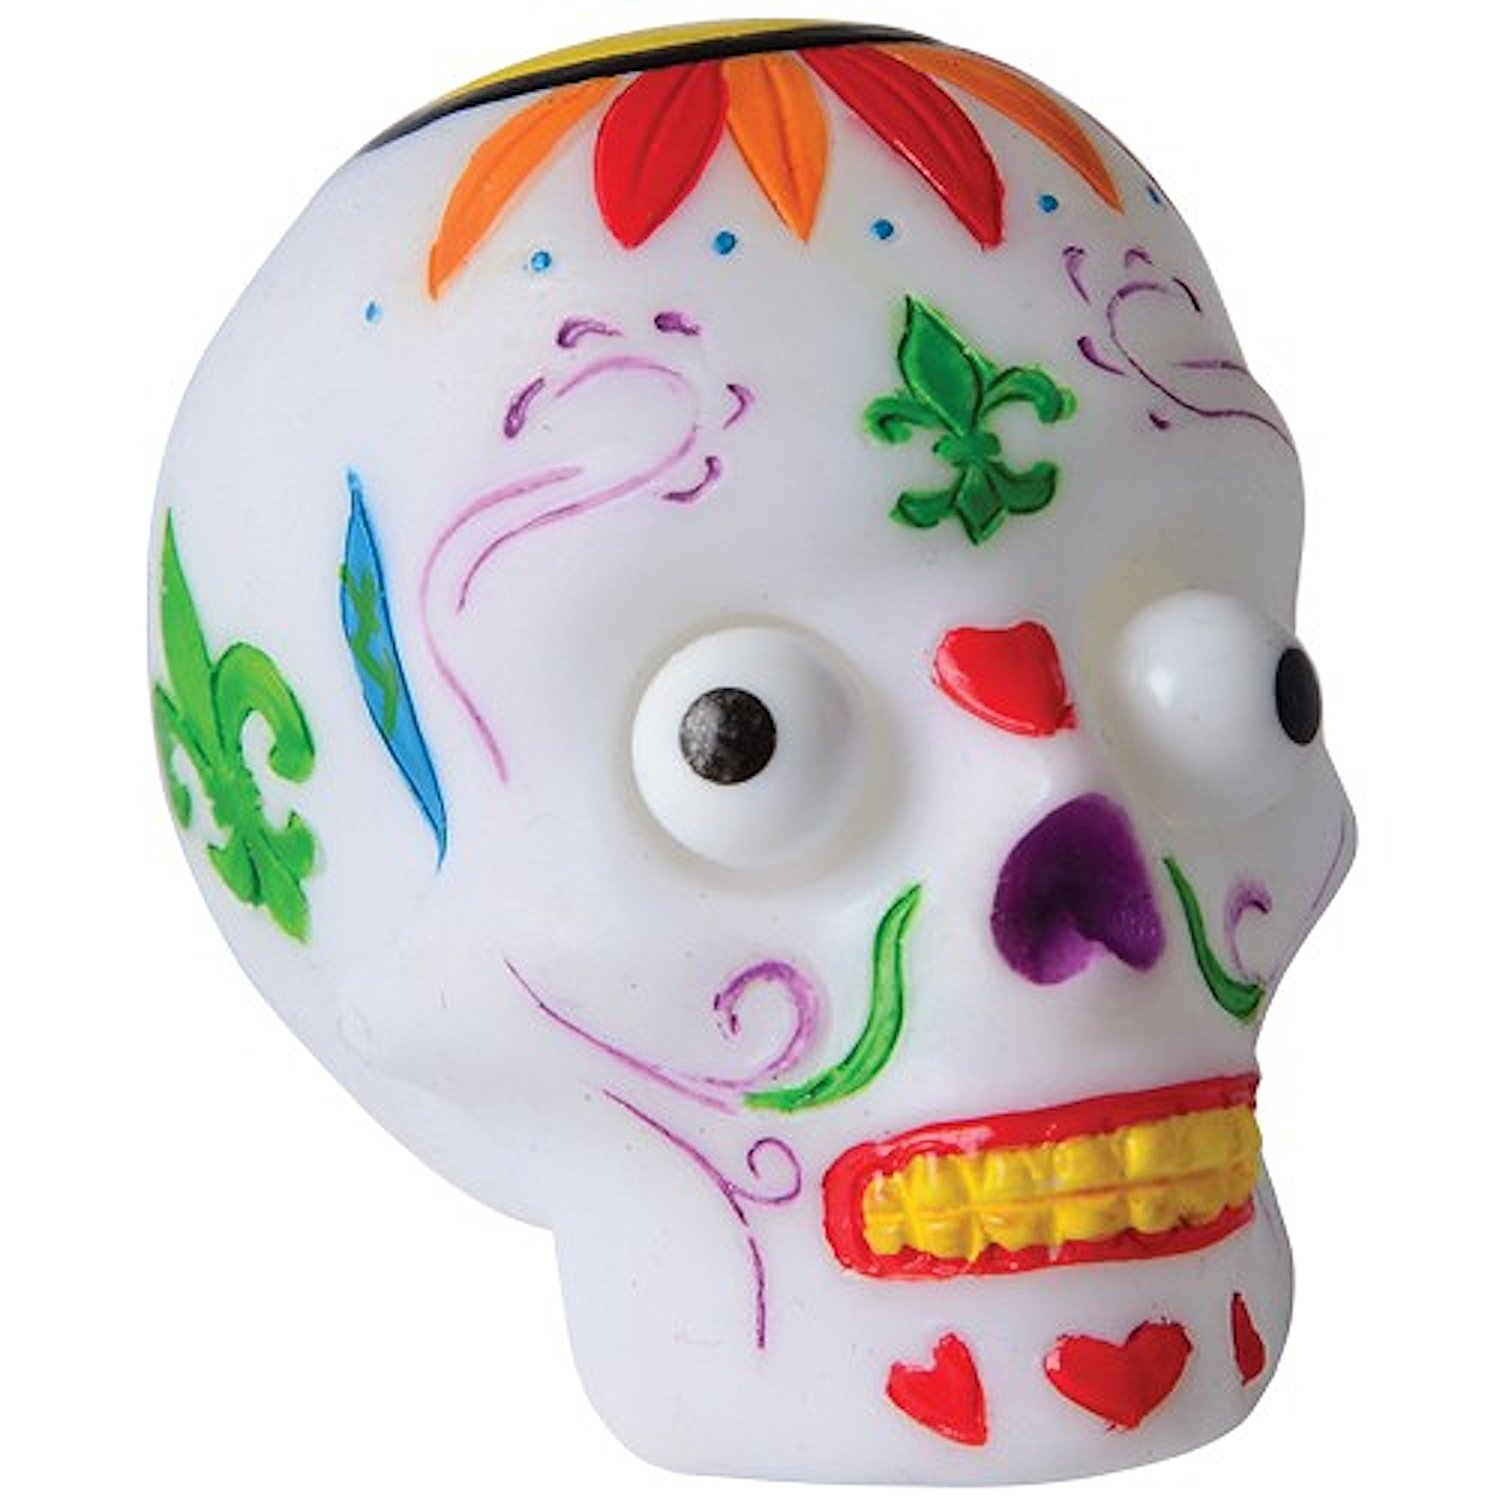 Popping Eye Day of the Dead Sugar Skull Head~12 Pcs Set Eyes Pop Out TOY-SS-12